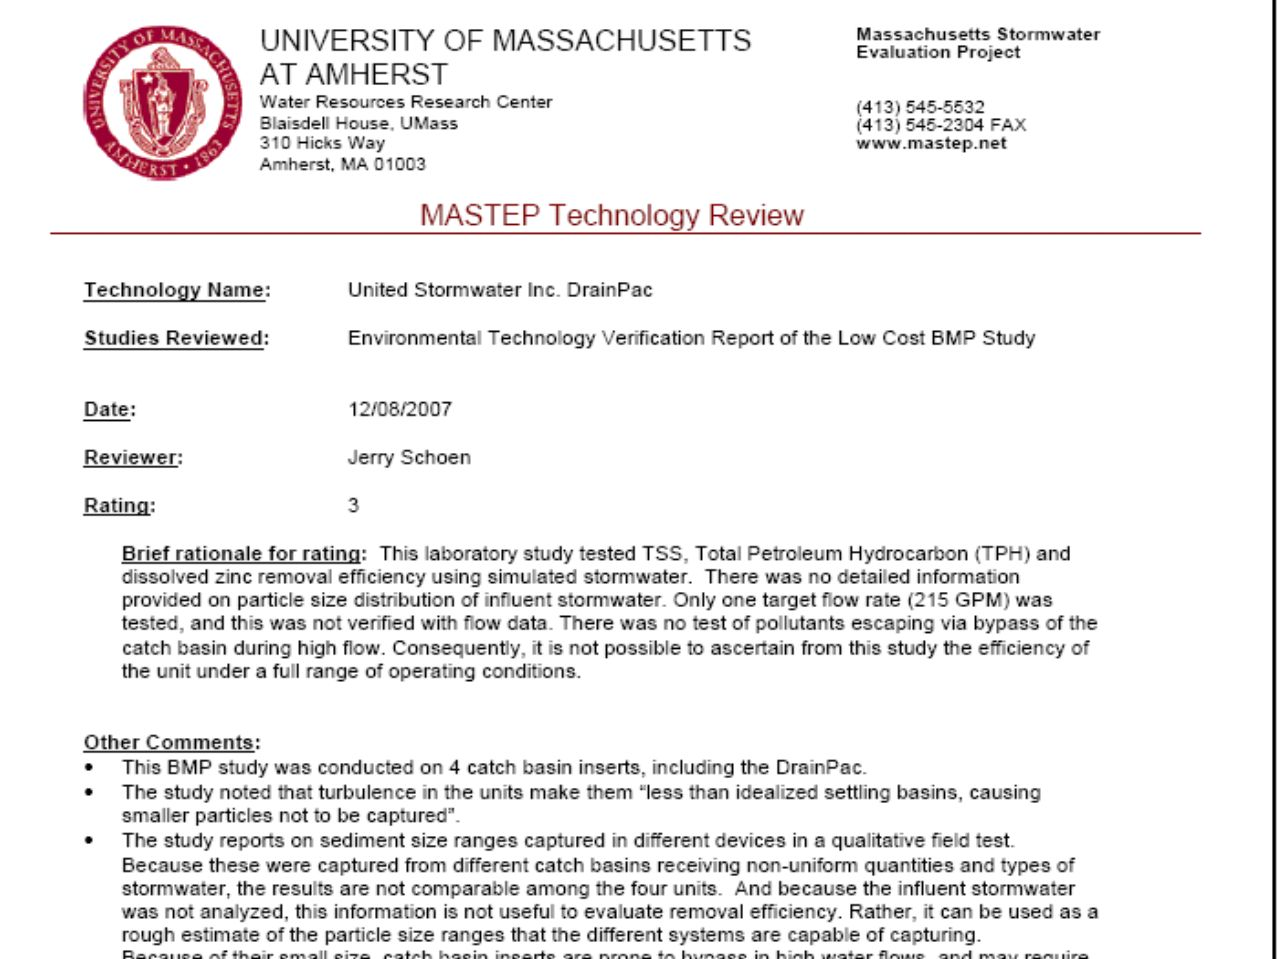 MASTEP provides a summary page for most BMPs (those with ratings of 1, 2, or 3), explaining which studies were used in the MASTEP evaluation, what rating achieved, why it achieved the rating, along with additional explanatory notes.